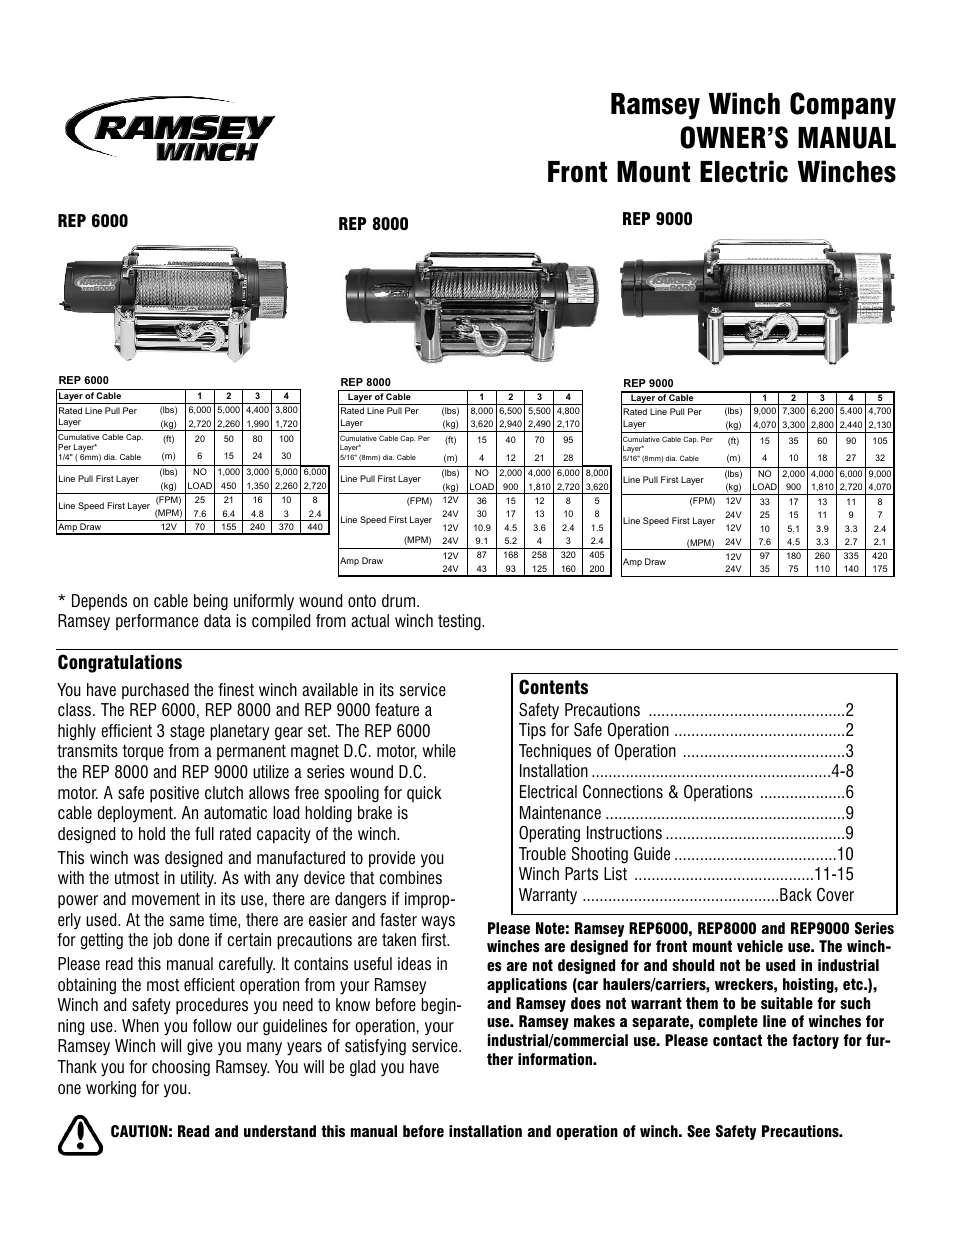 ramsey winch rep 6000_8000_9000 current page1?resize=665%2C861 ramsey winch solenoid wiring diagram double 4 wire solenoid 4 wheeler winch wiring diagram at n-0.co